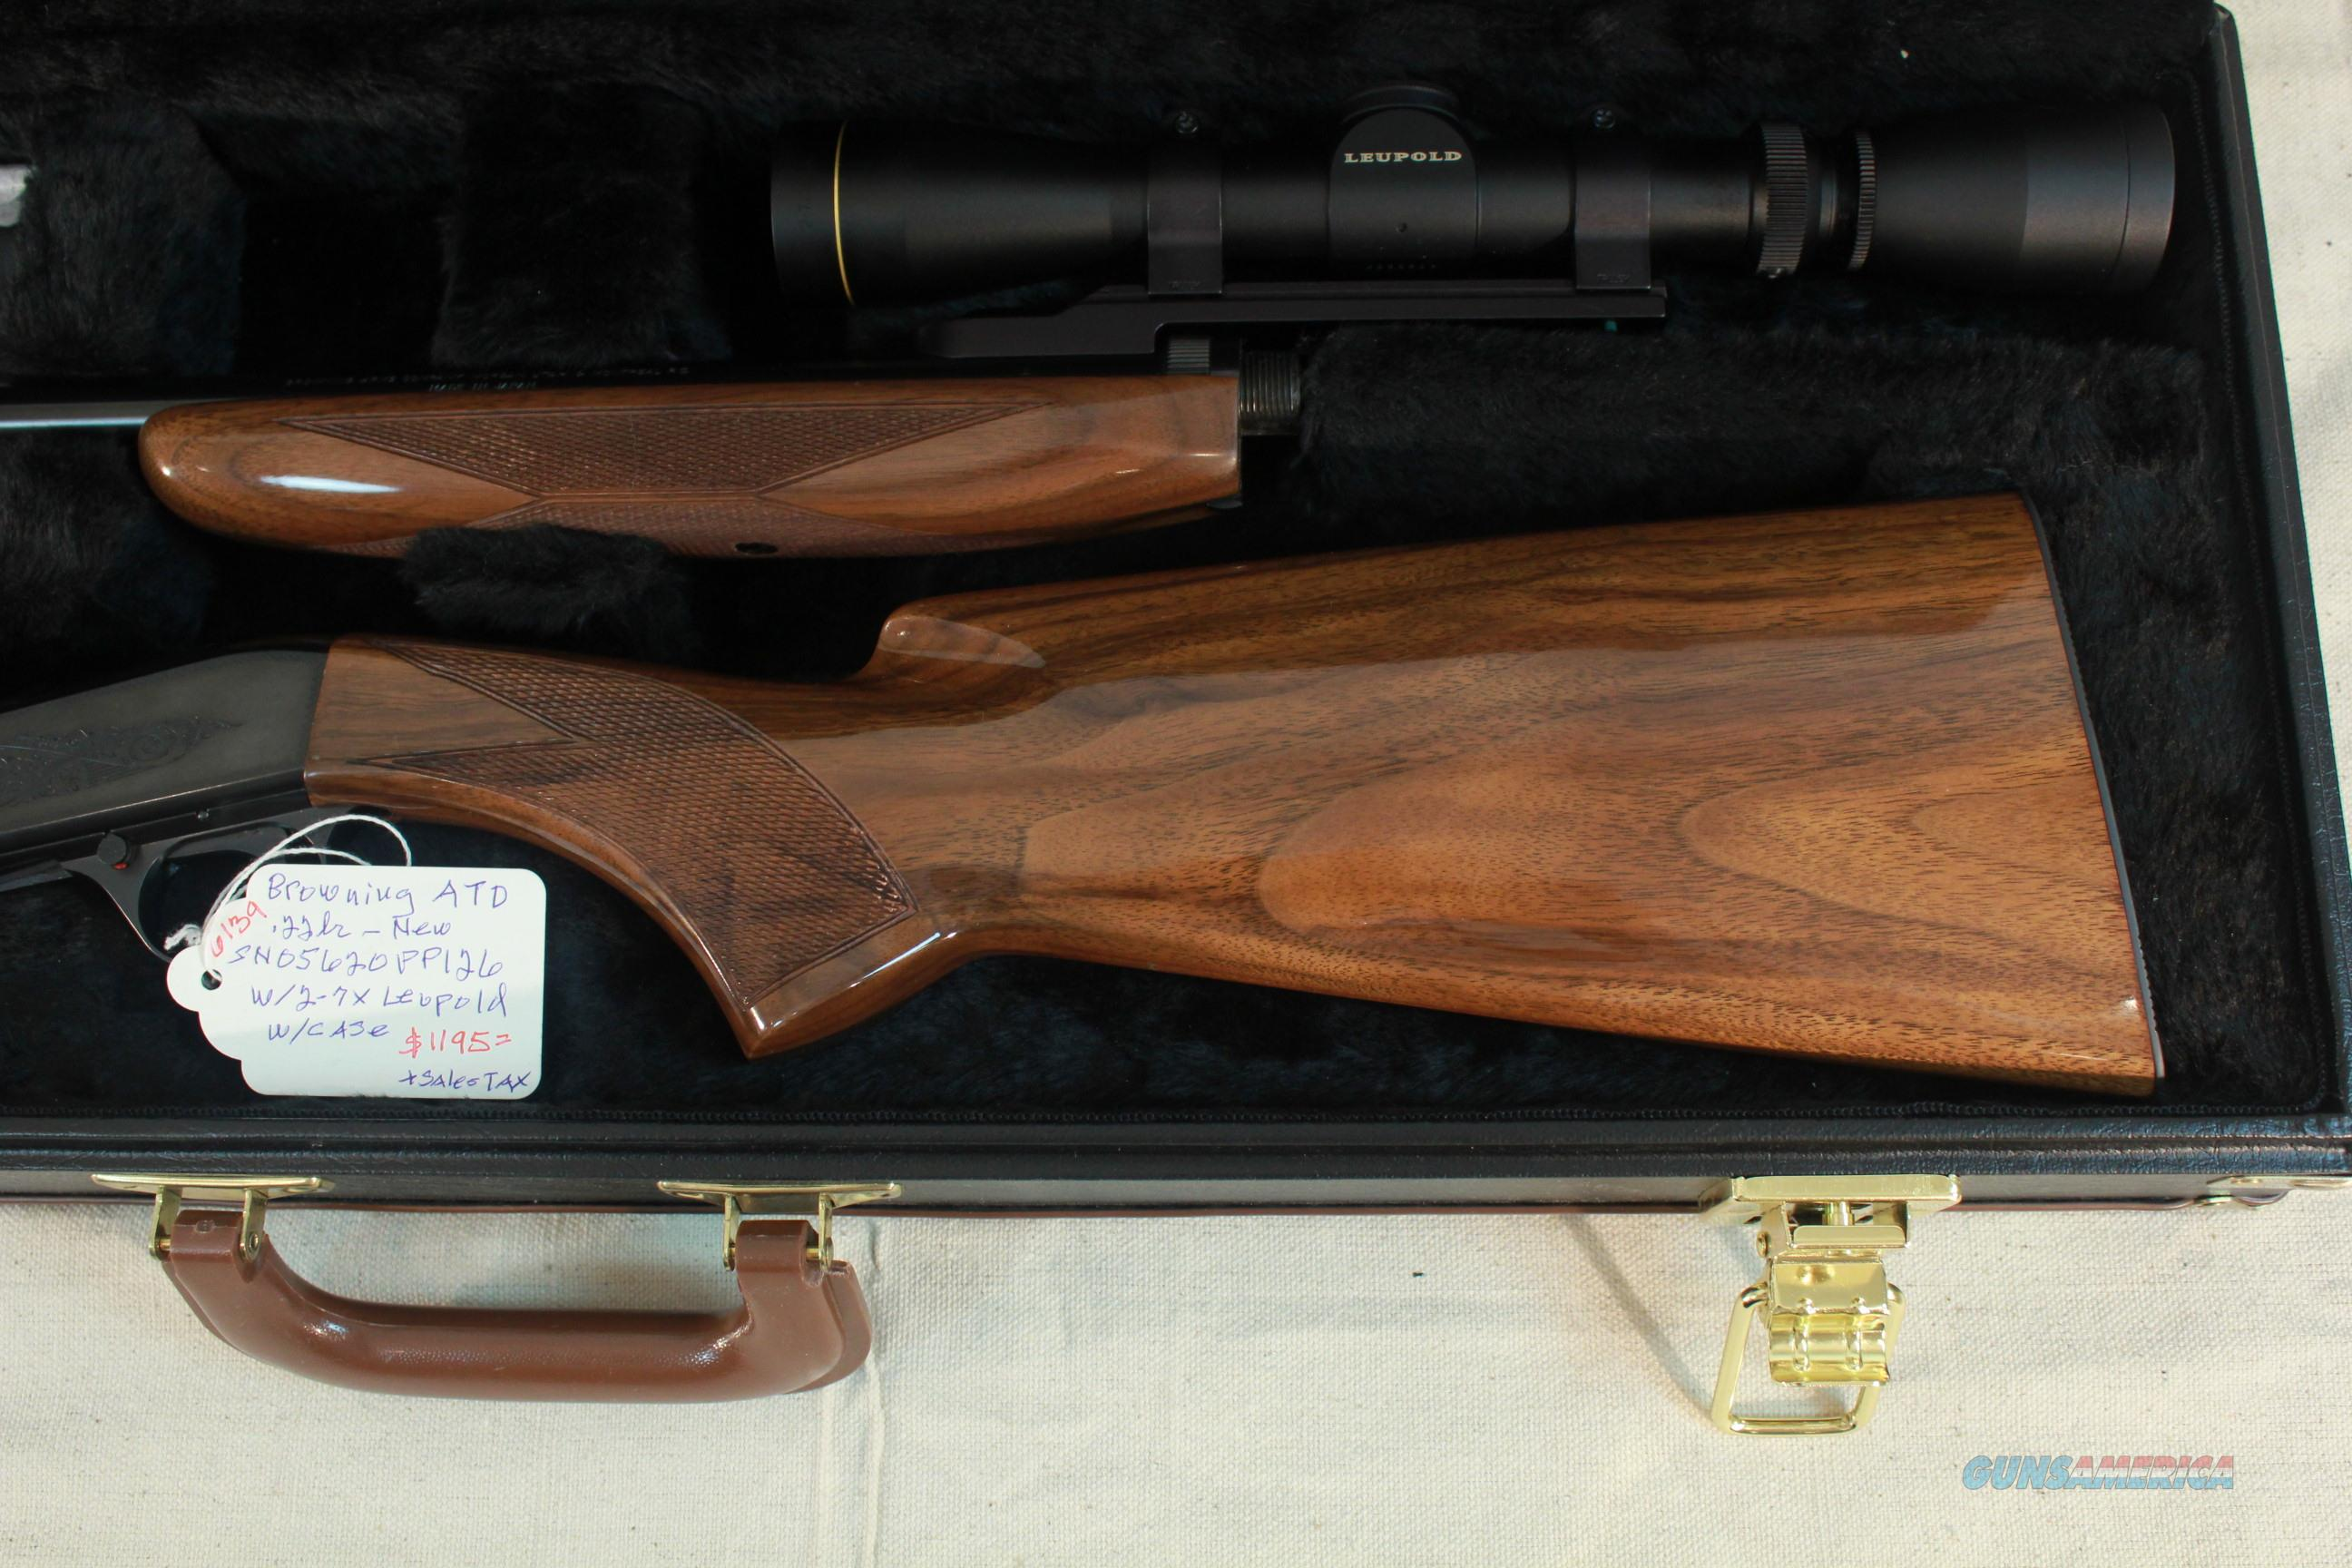 Browning atd auto takedown 22lr with 2 7x leupold and browning case